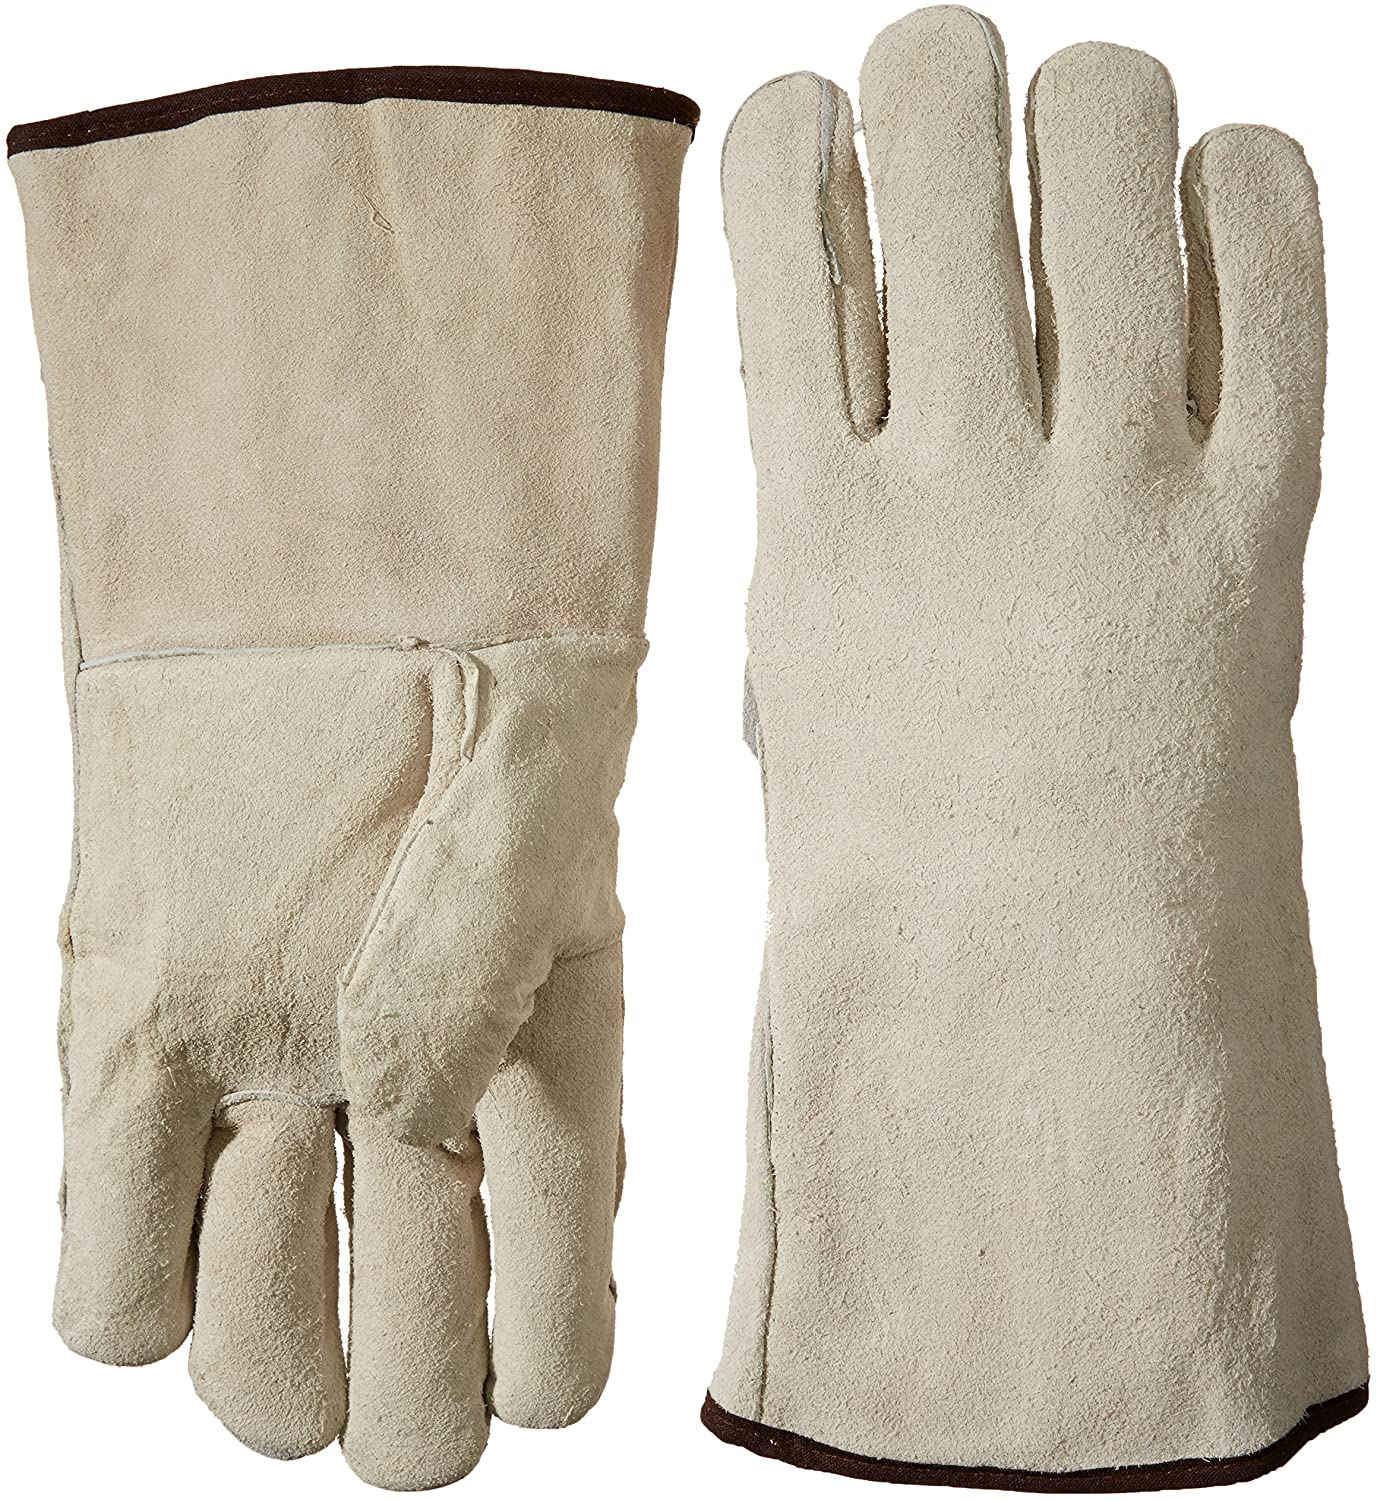 Bon 41-141 Leather Welder Gloves, Large